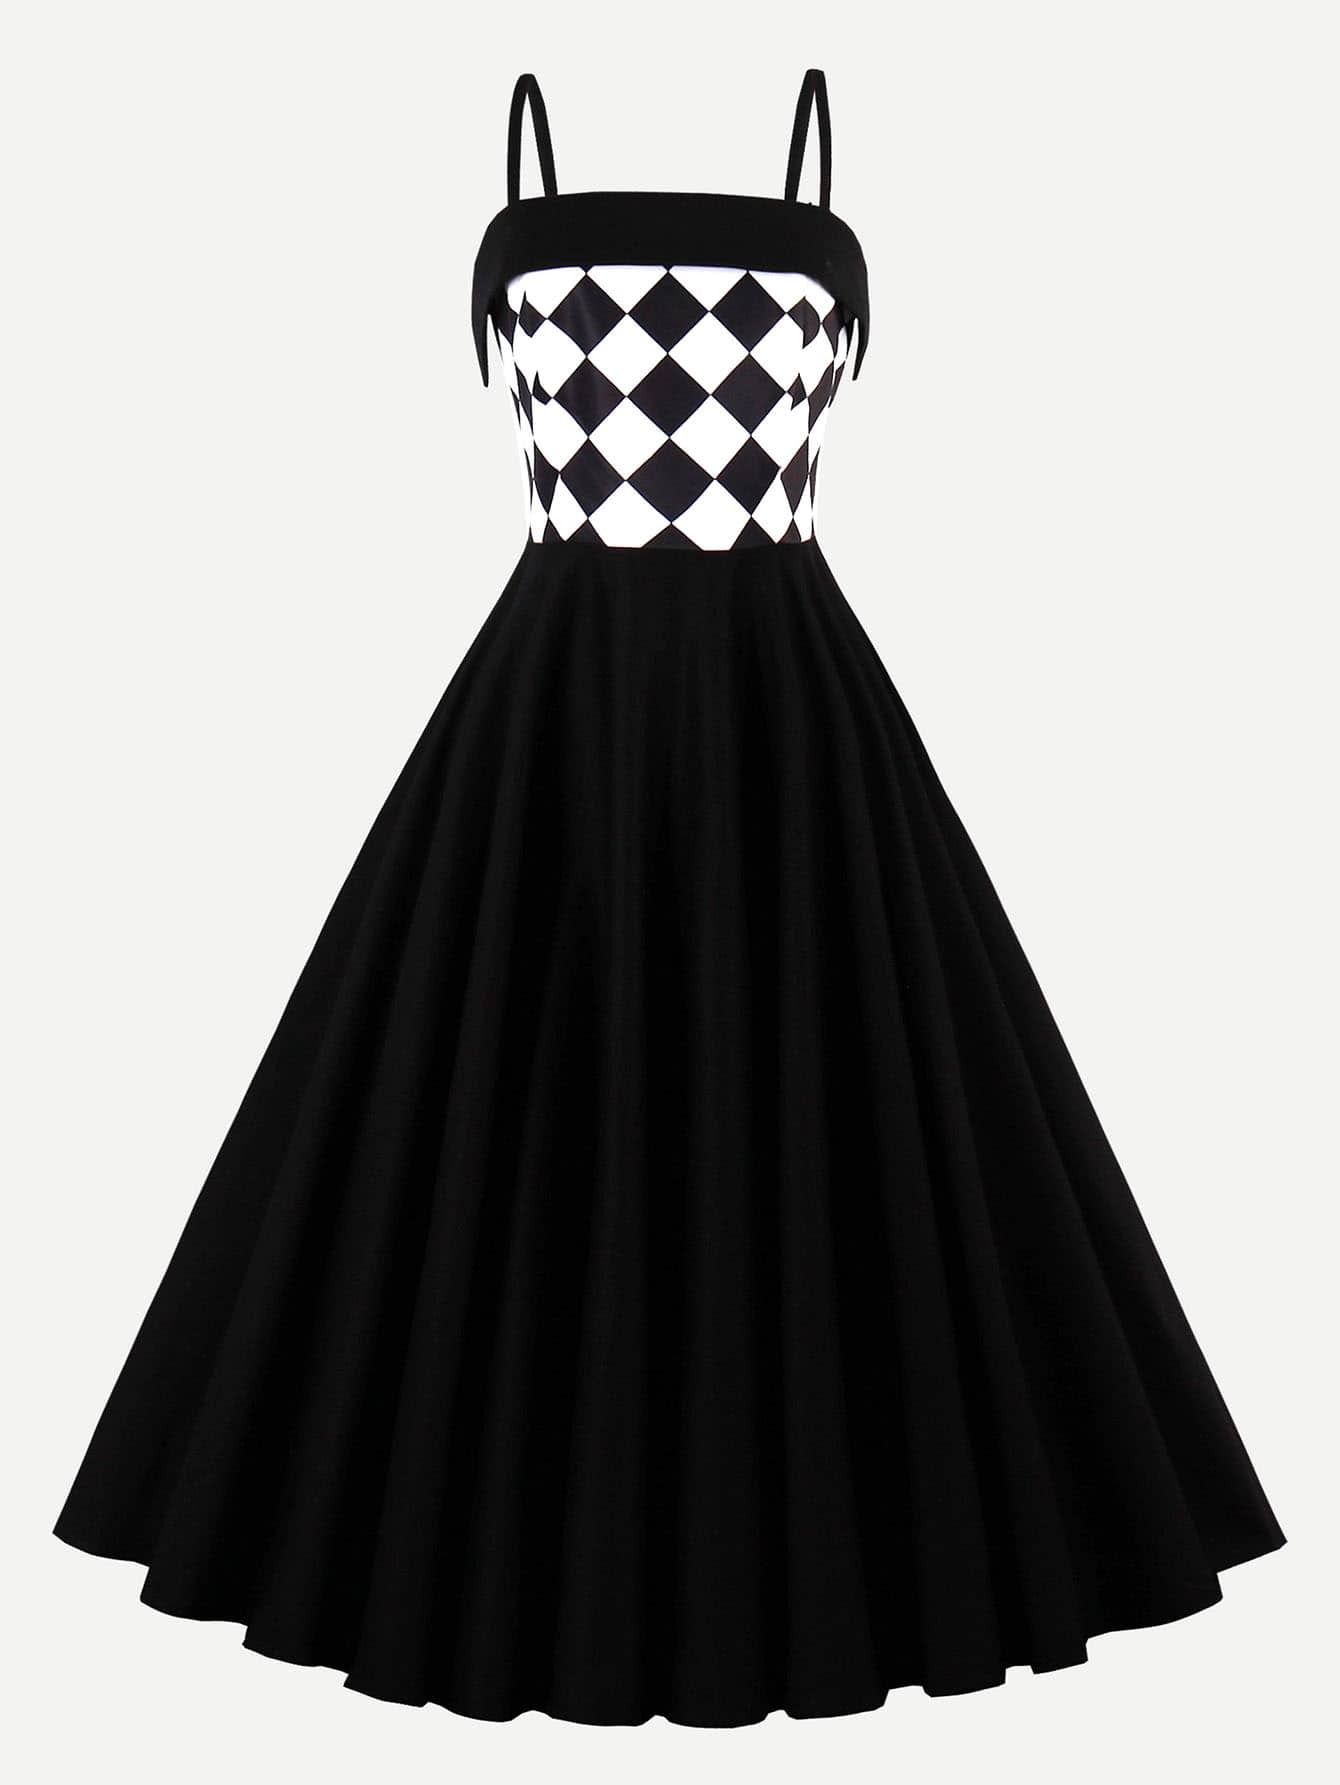 Contrast Checkered Circle Dress  мультиметр oem excel dt9205a 12768